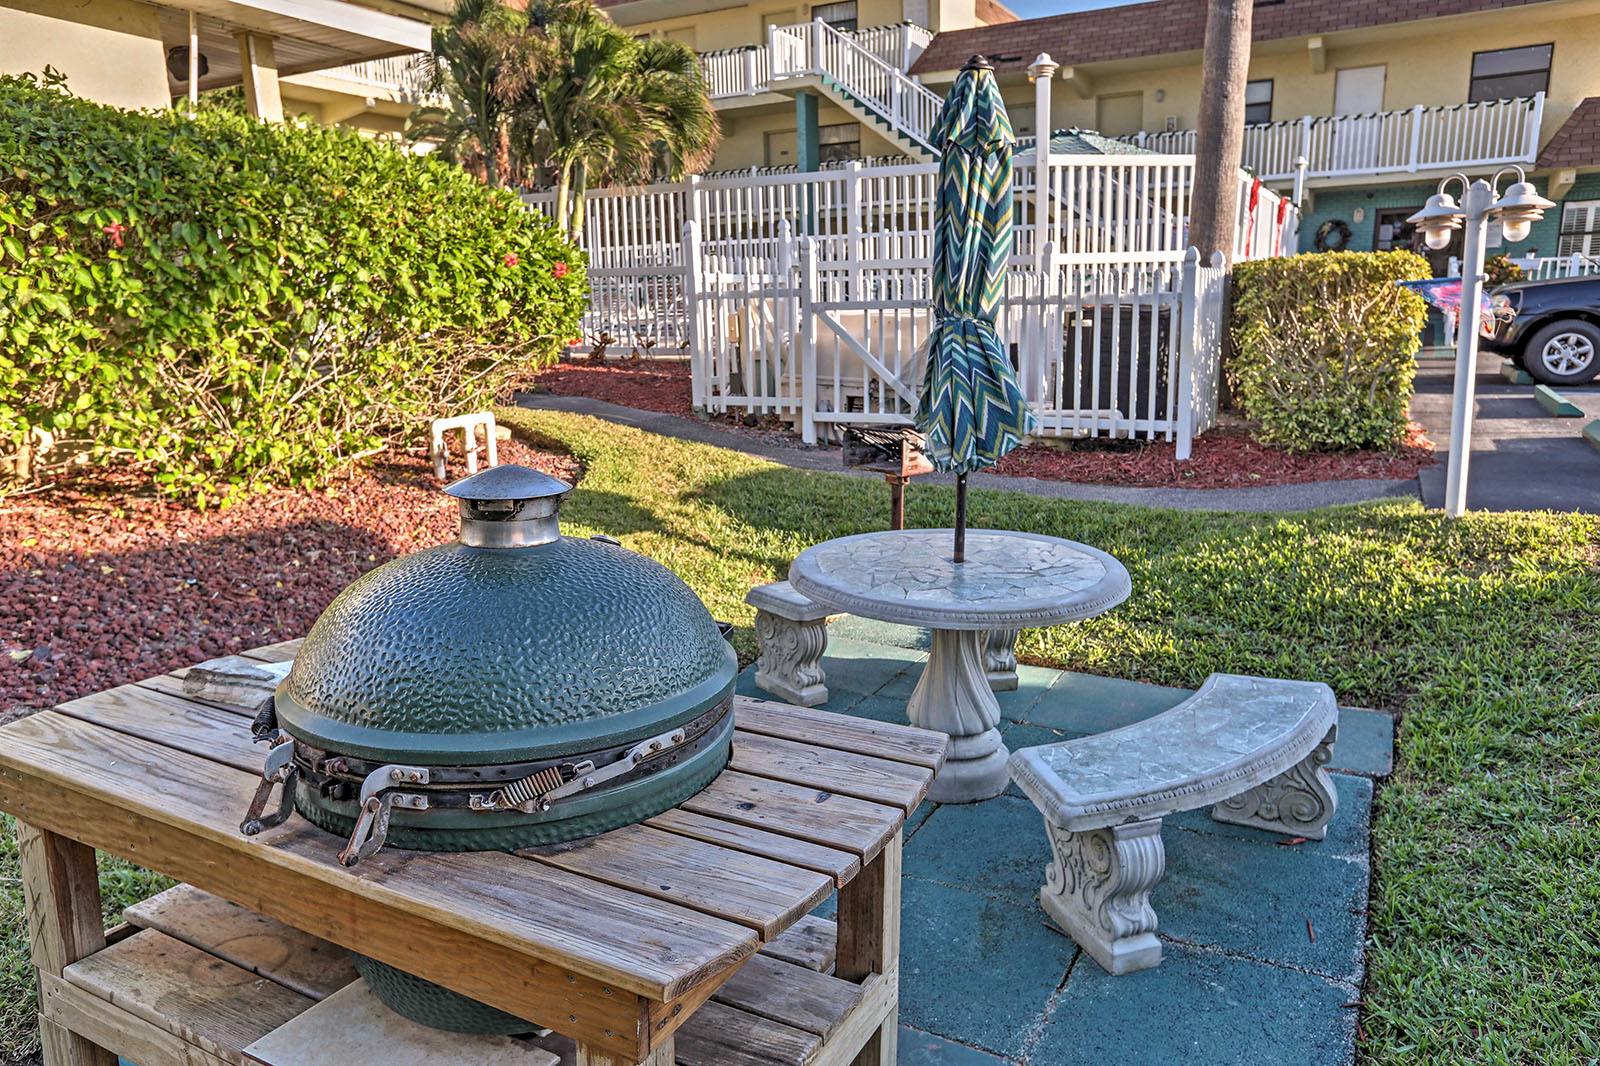 Barbecue pit for grilling during your family vacation in Melbourne Beach